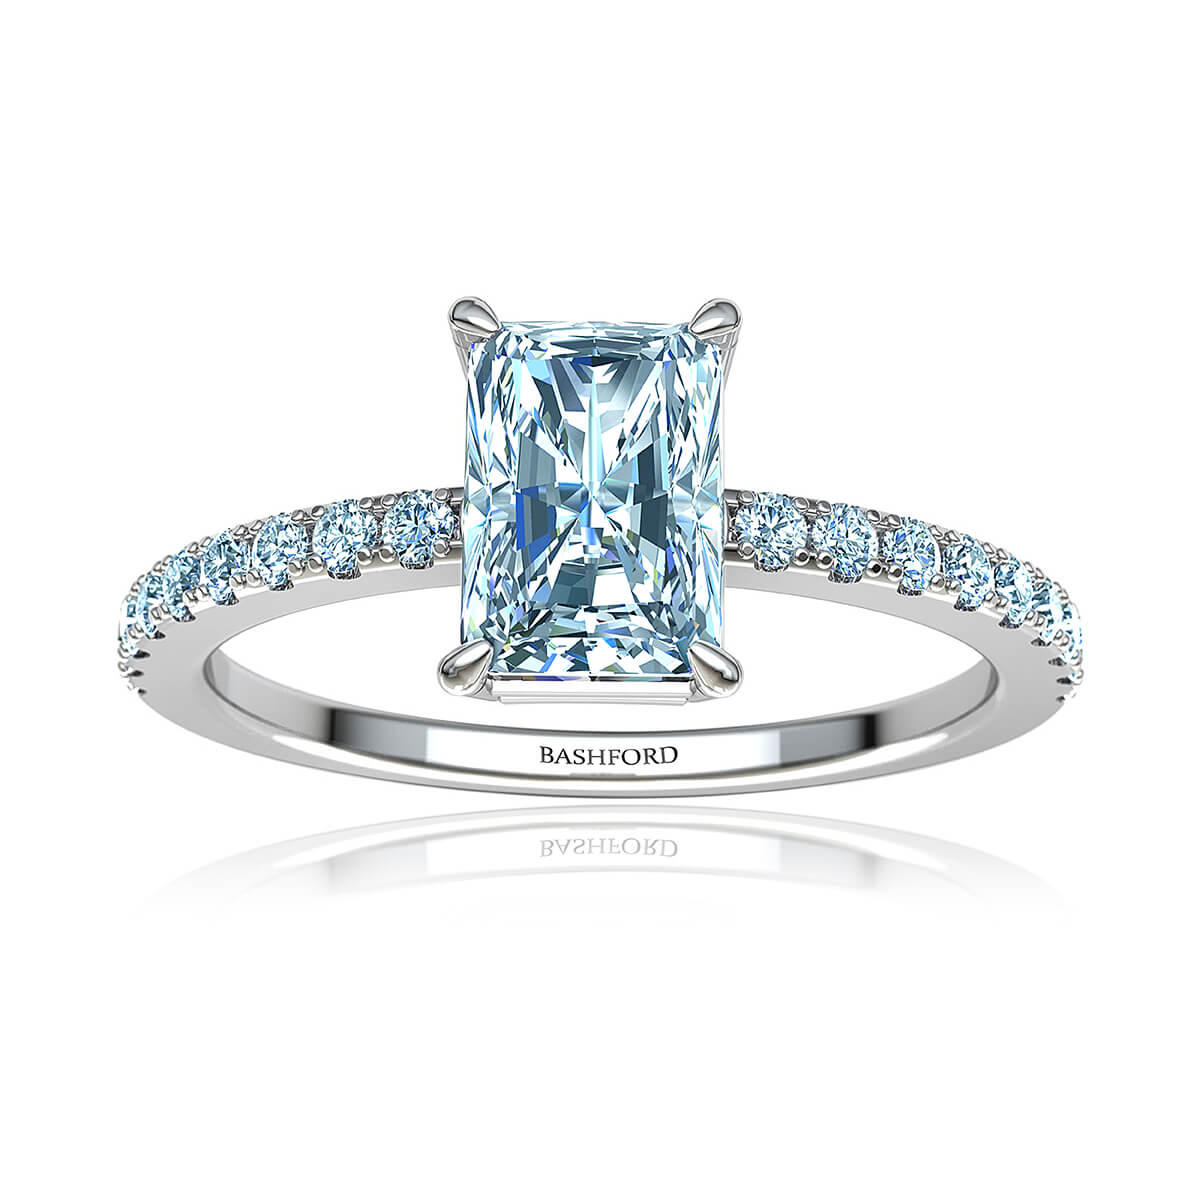 Capricia Diamond Ring (with VS1, F, 3/4 Carat Radiant Diamond)